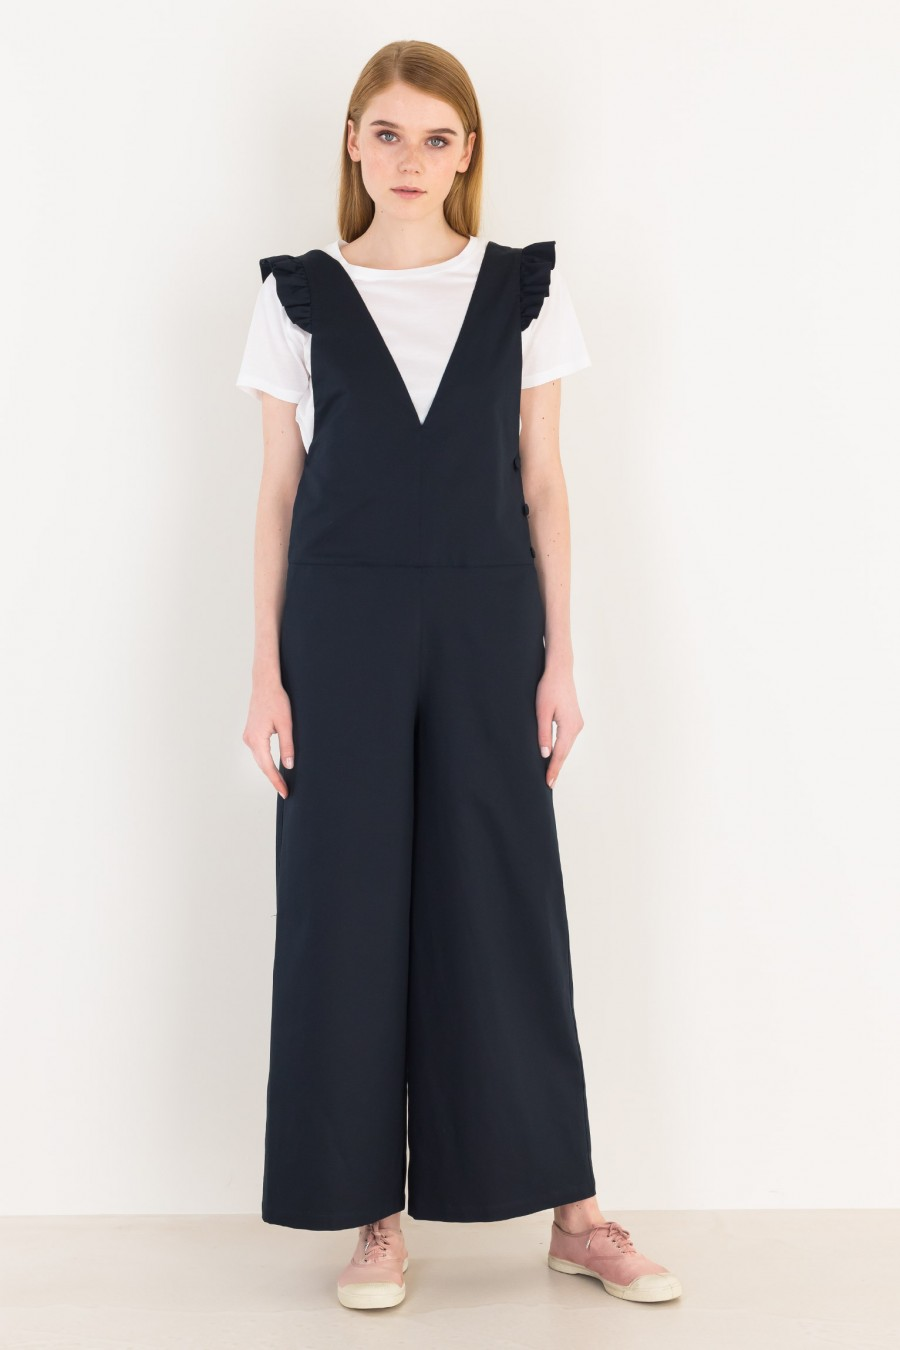 Overalls with ruffles